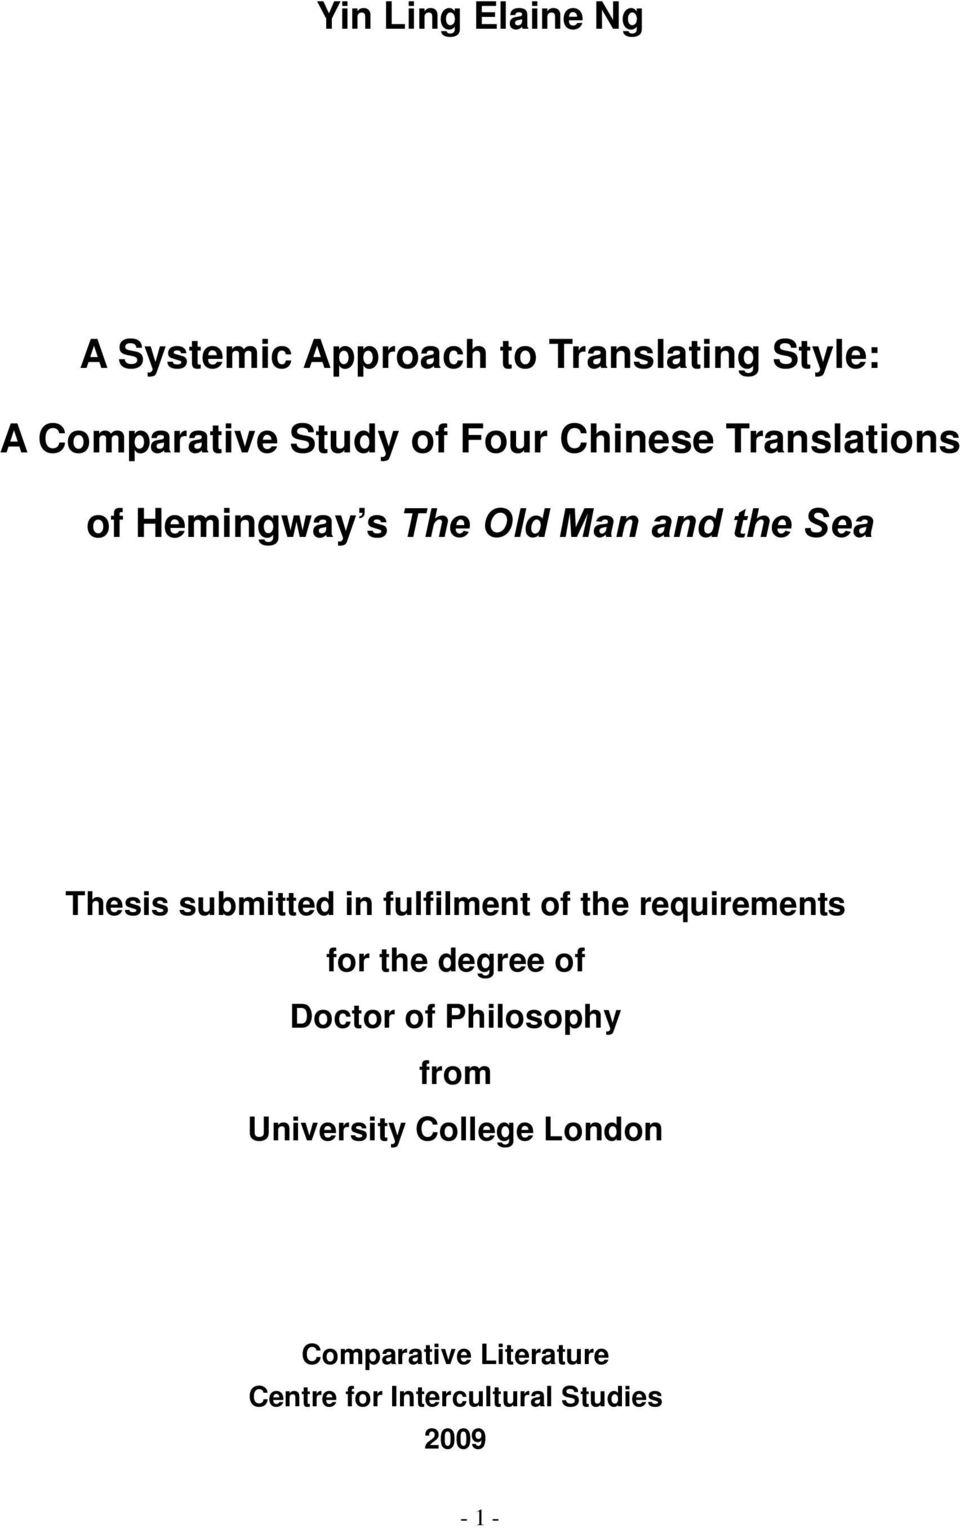 A Systemic Approach to Translating Style: A Comparative